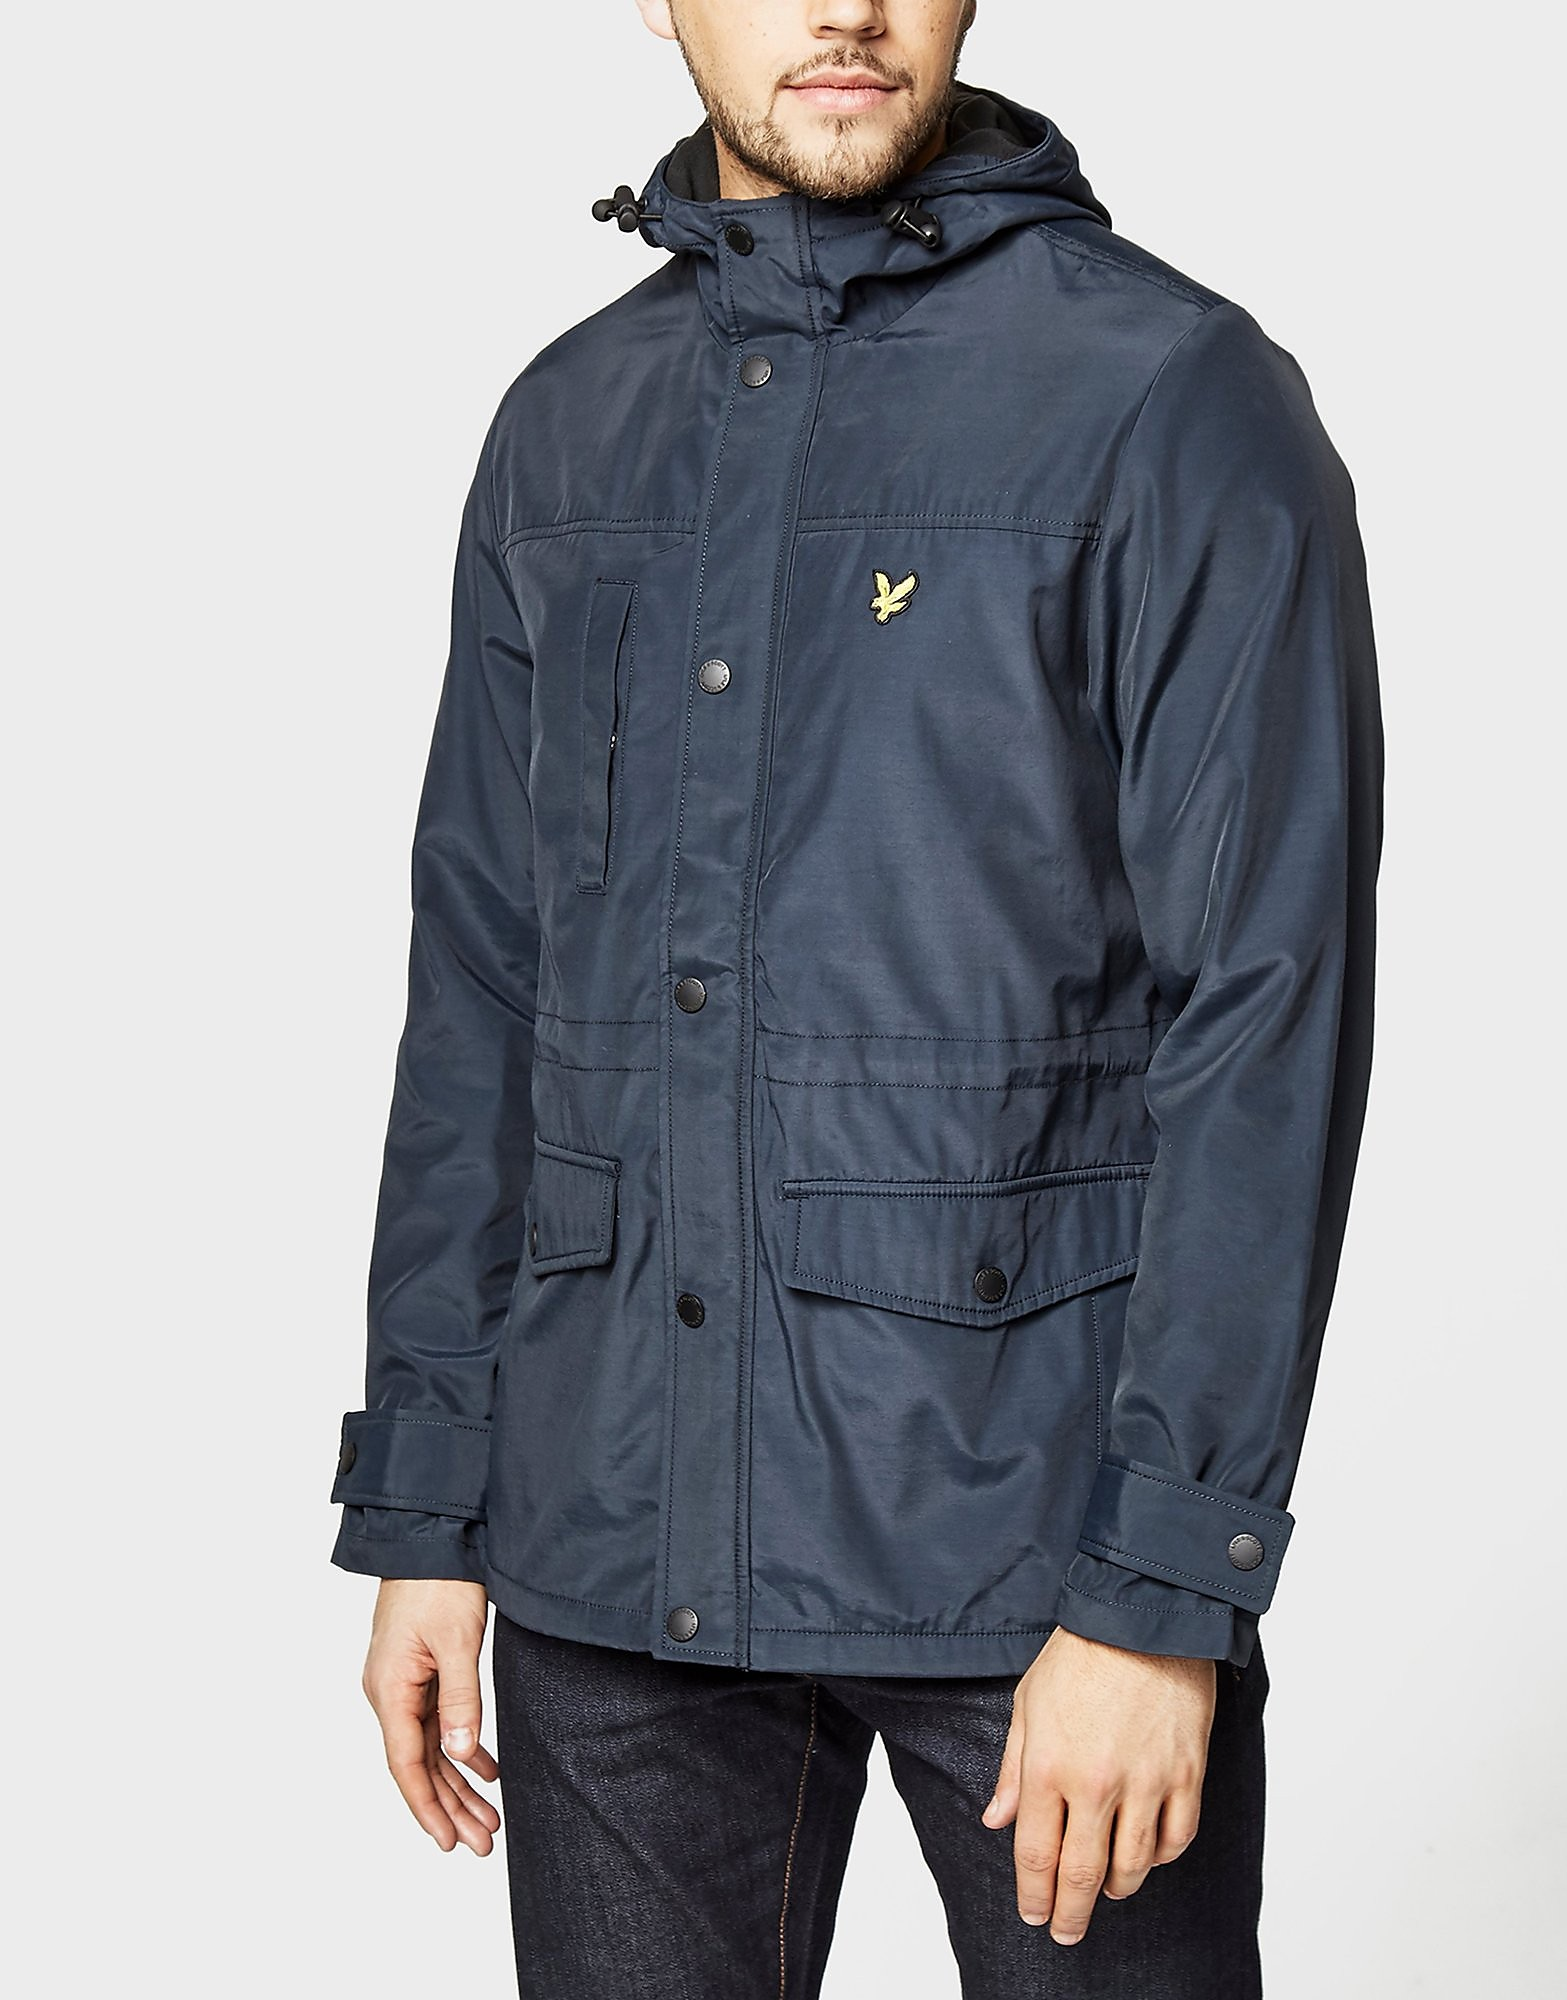 Lyle & Scott Fleece Lined Padded Jacket